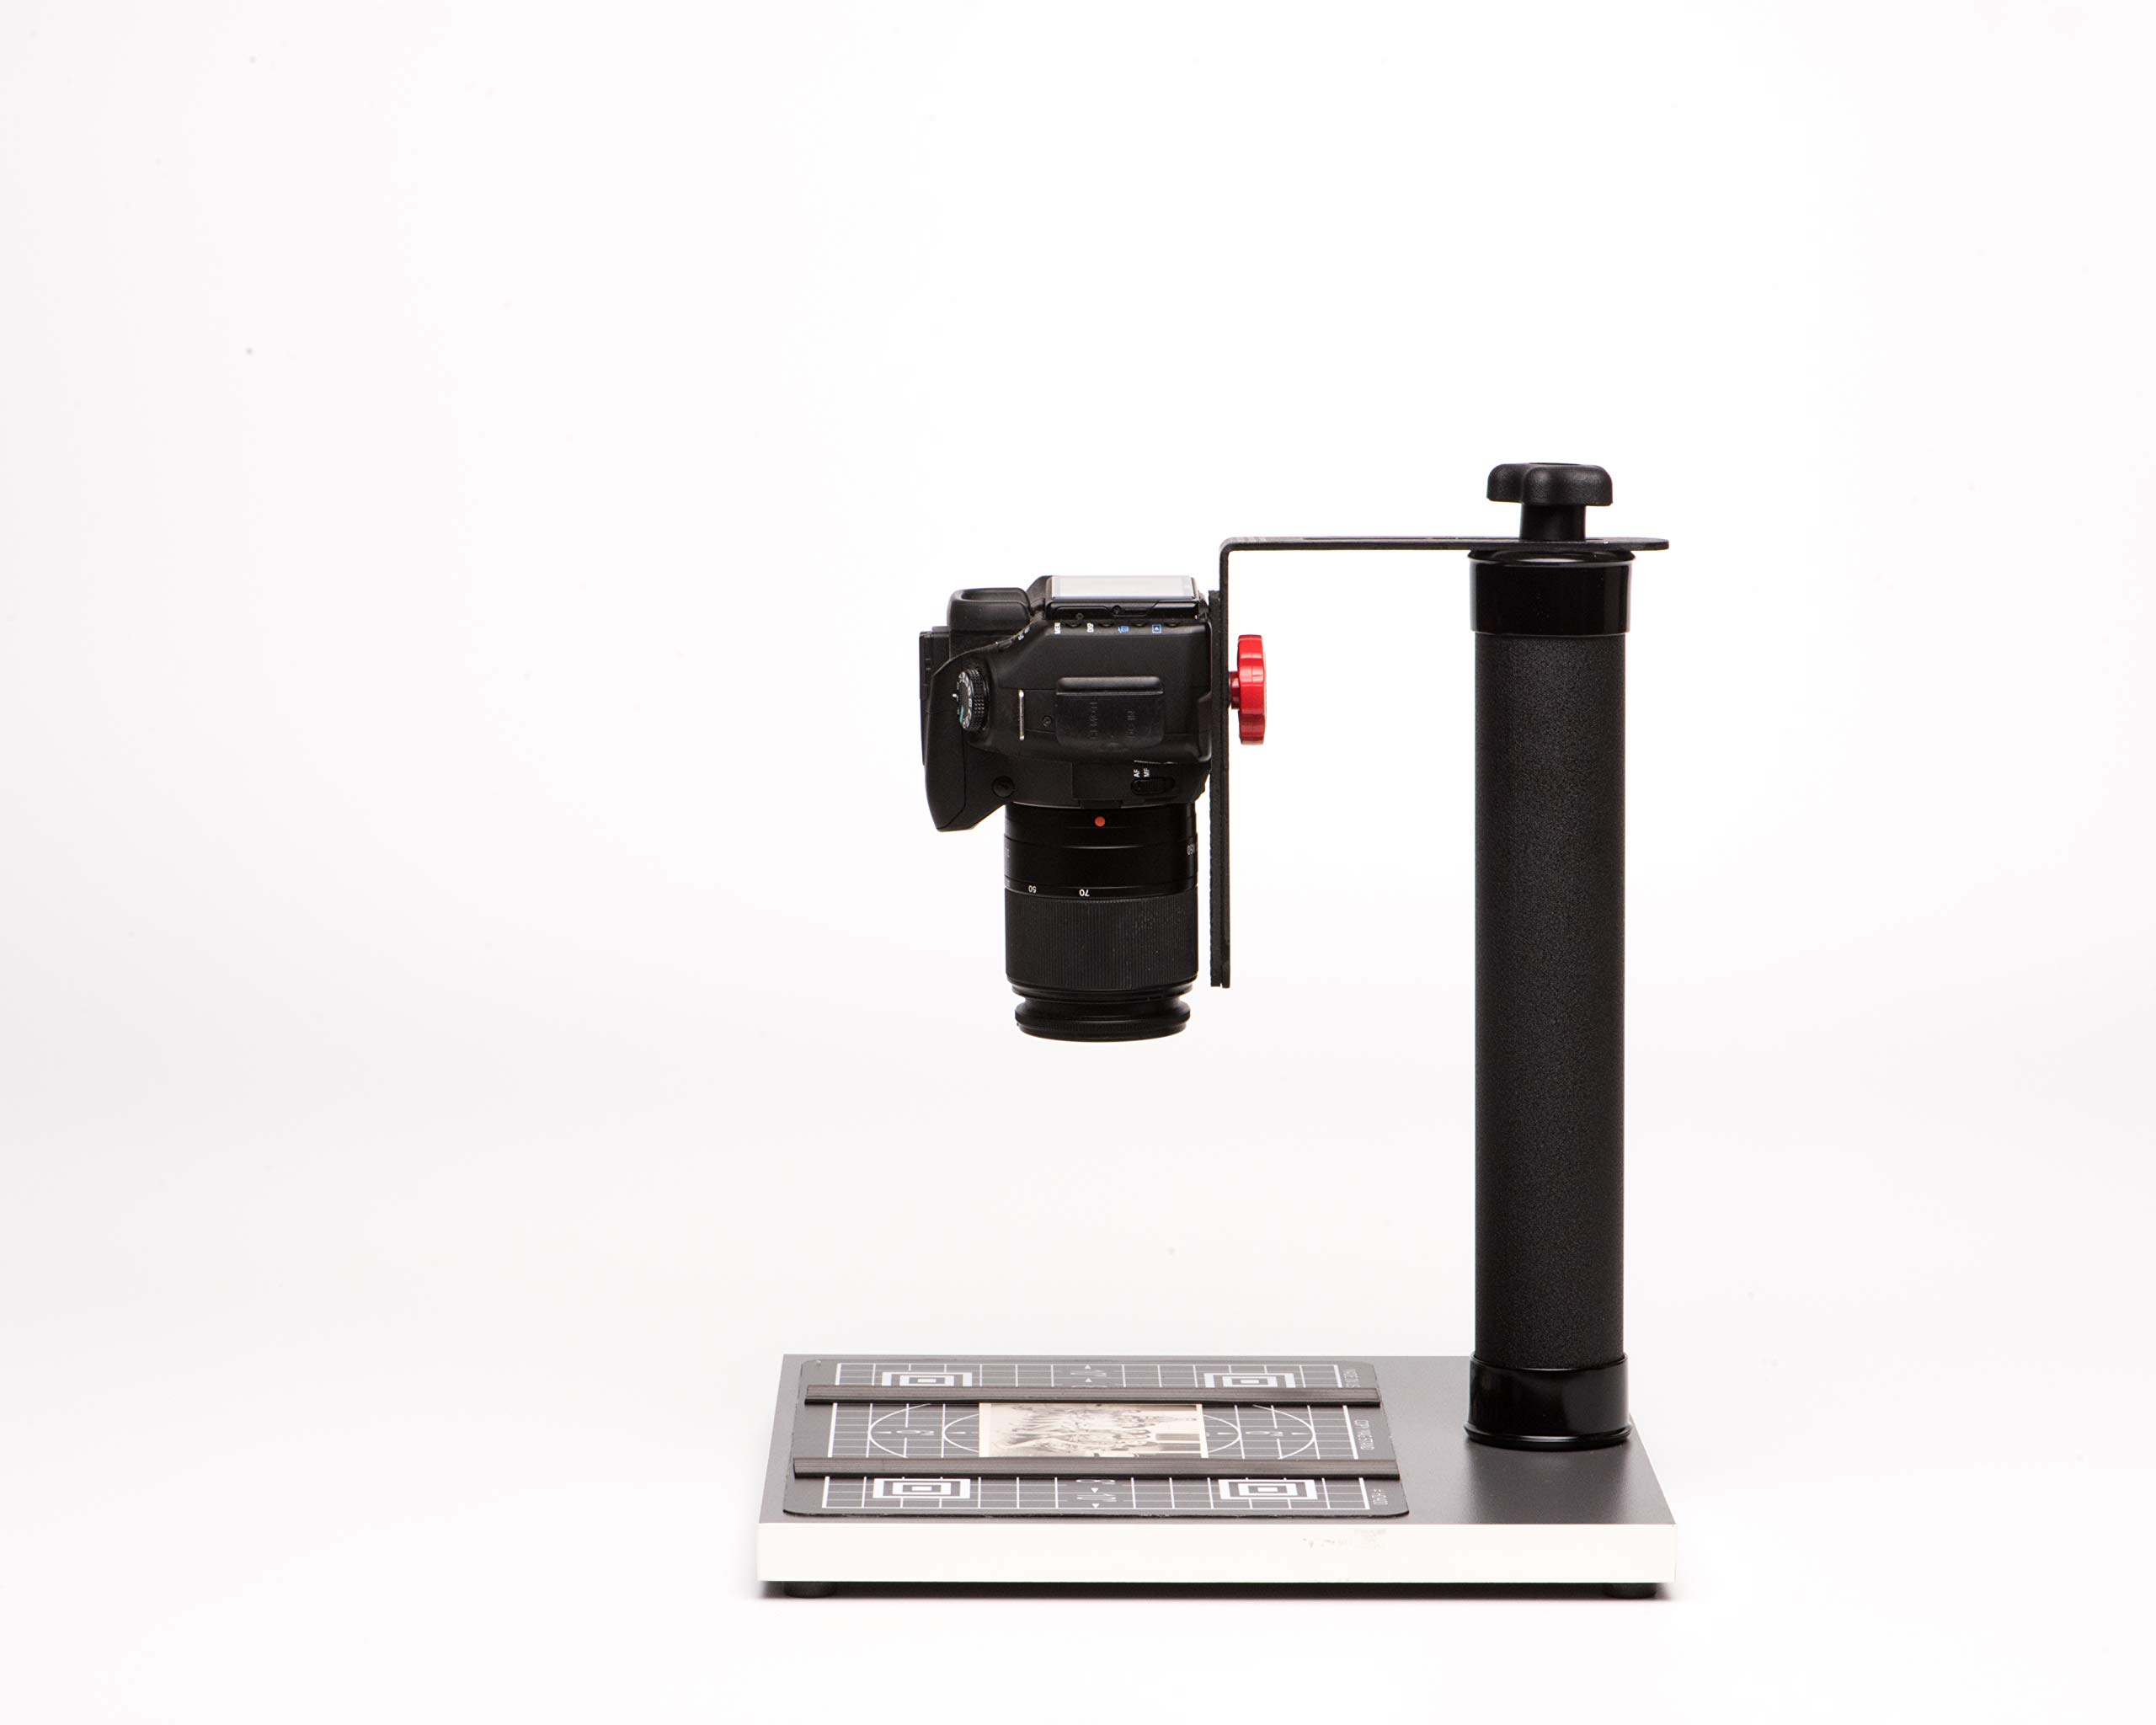 COPY STAND # HD400, A Compact & Small Tool for Digitizing Documents, Photos, or Small Objects with Today's SLR Super Megapixel Cameras by Stand Company (Image #9)